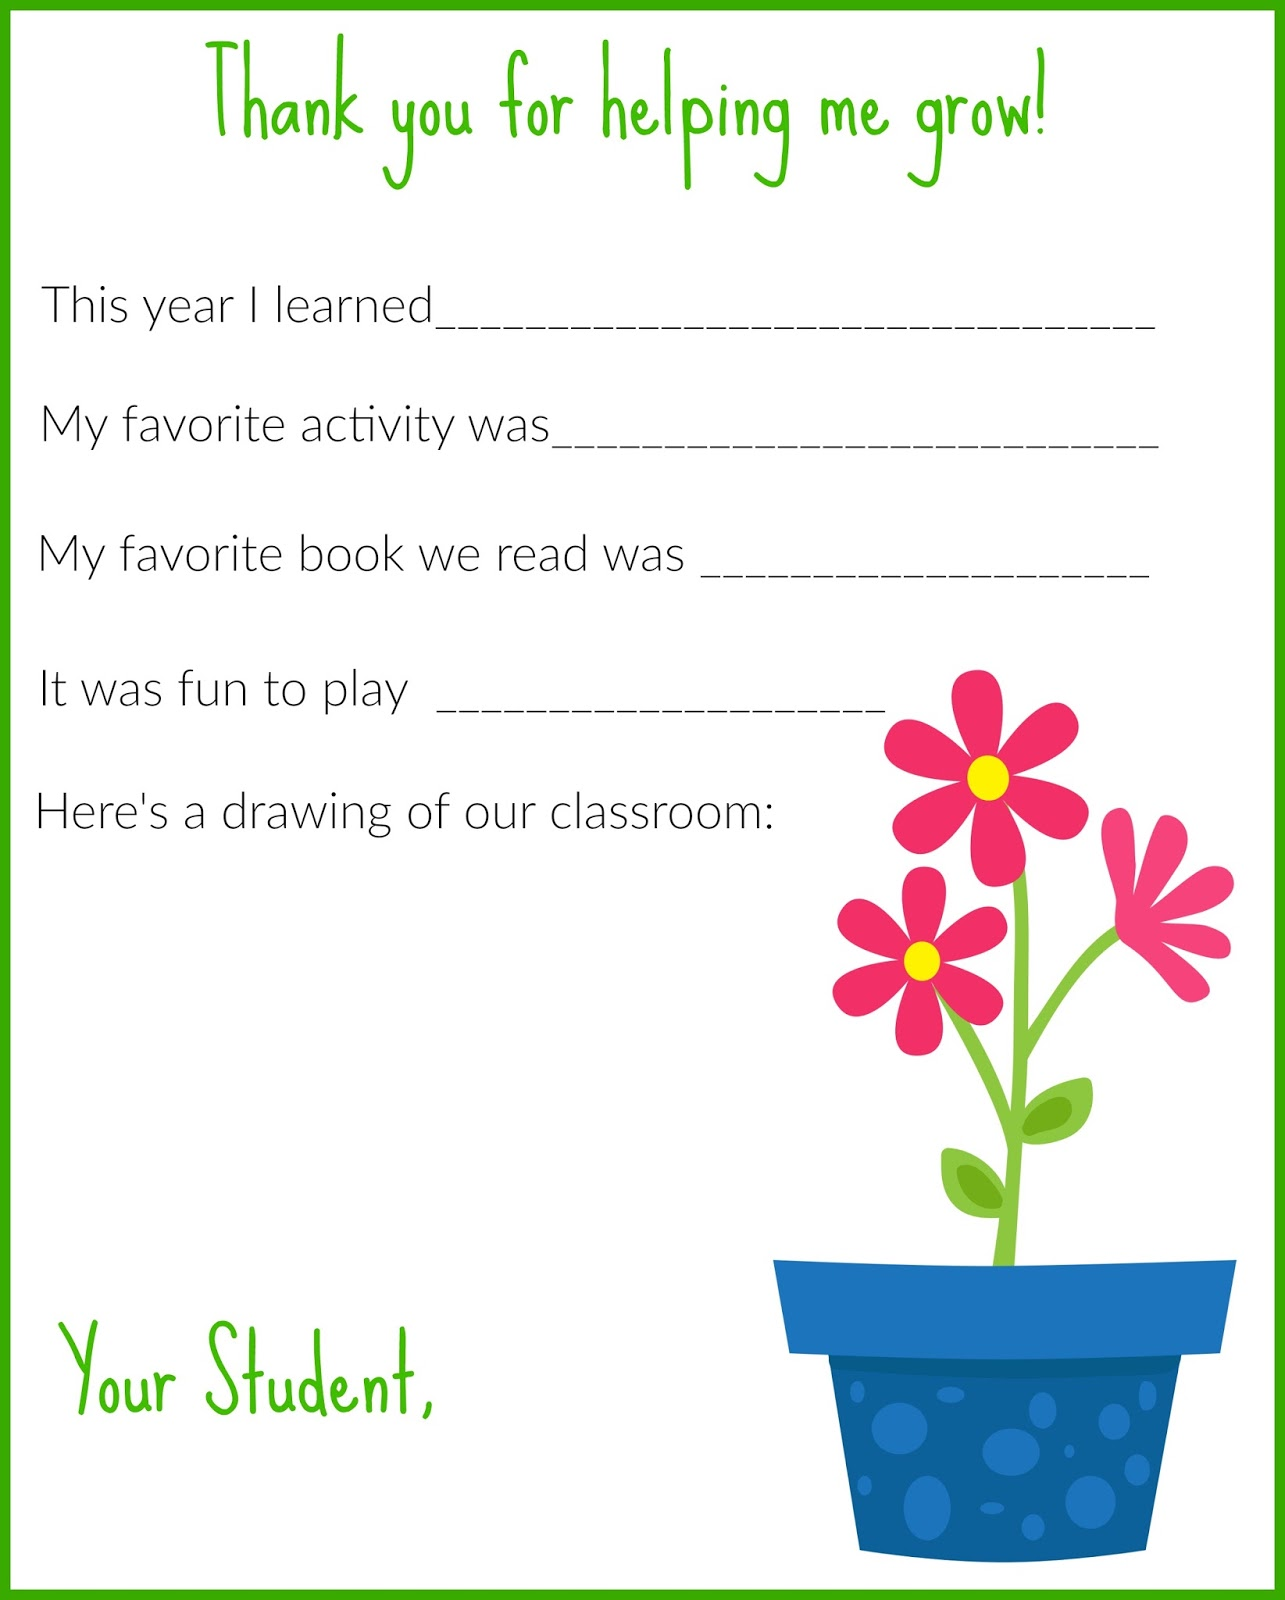 A Thank You Letter for Teachers {Free Printable} - The ...